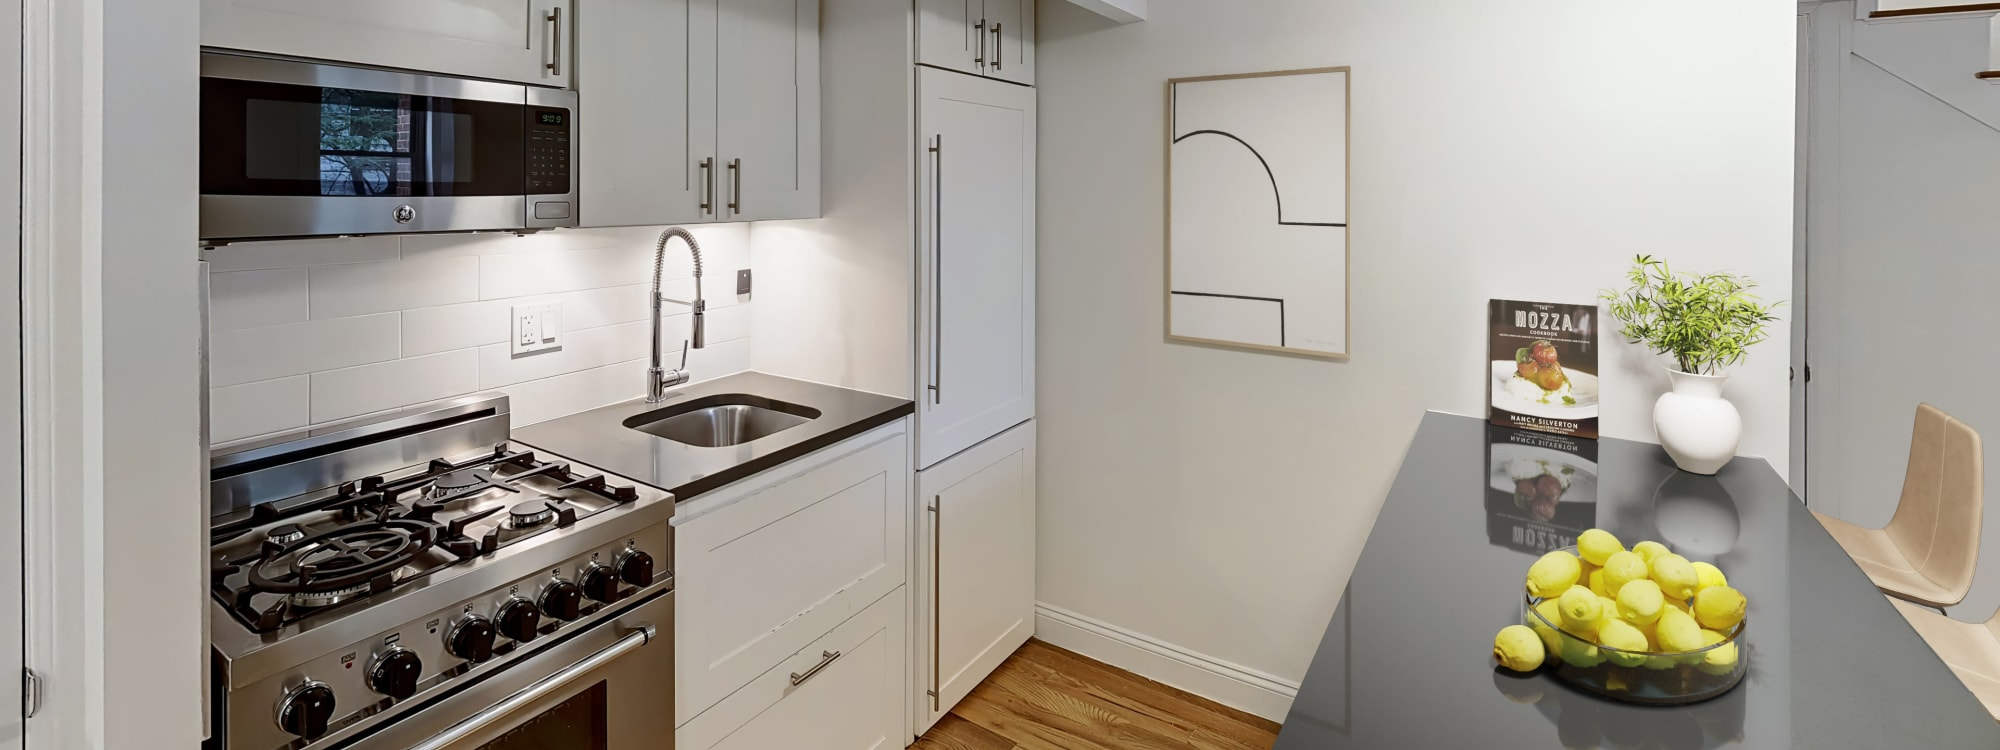 Availability at 210-220 E. 22nd Street in New York, New York